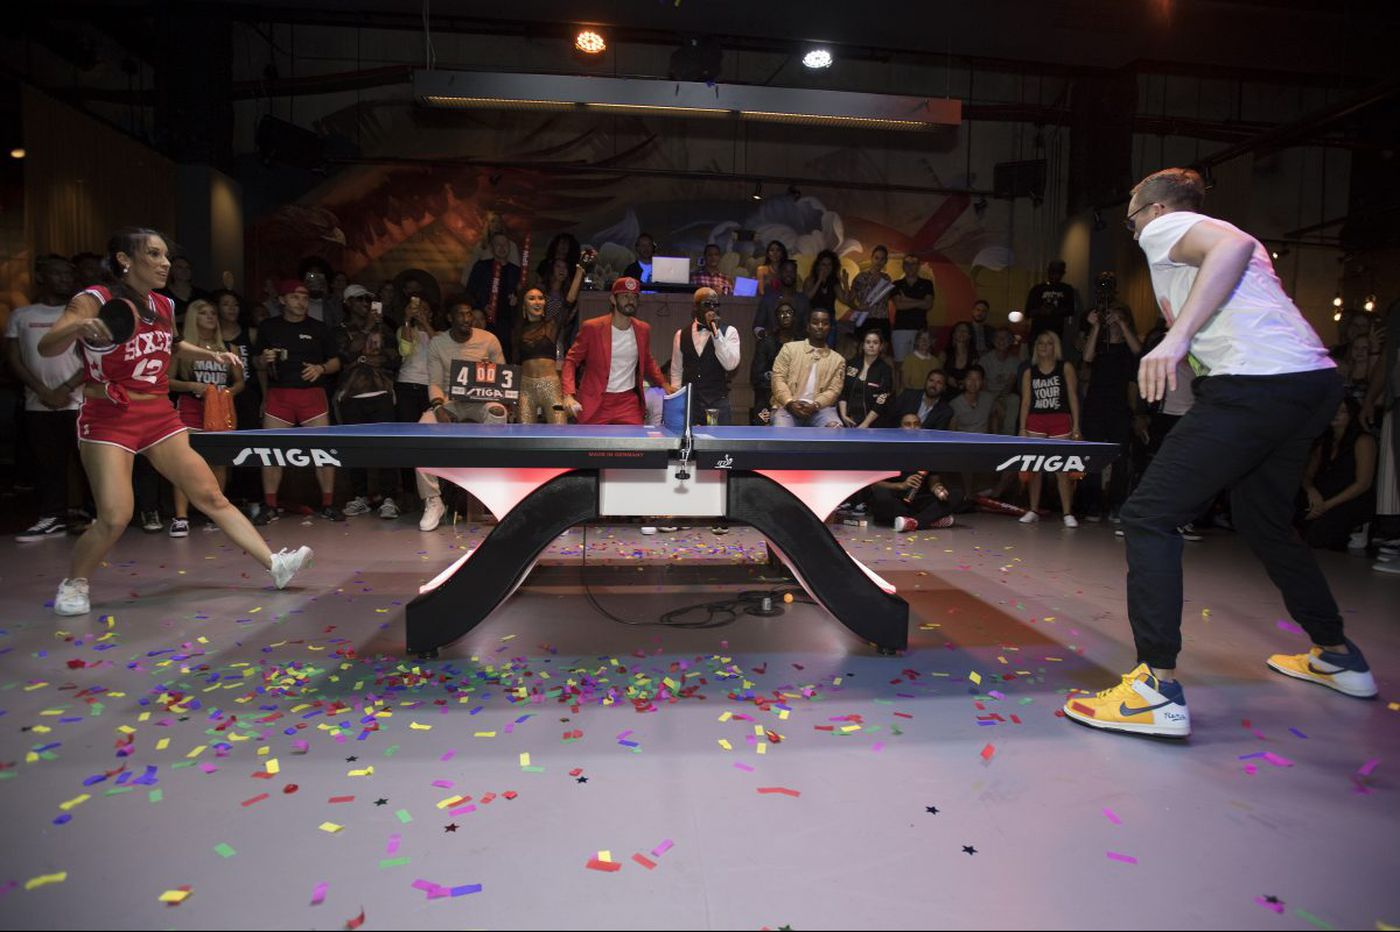 I expected to hate SPiN, Philly's new ping-pong bar. Here's what I wasn't counting on